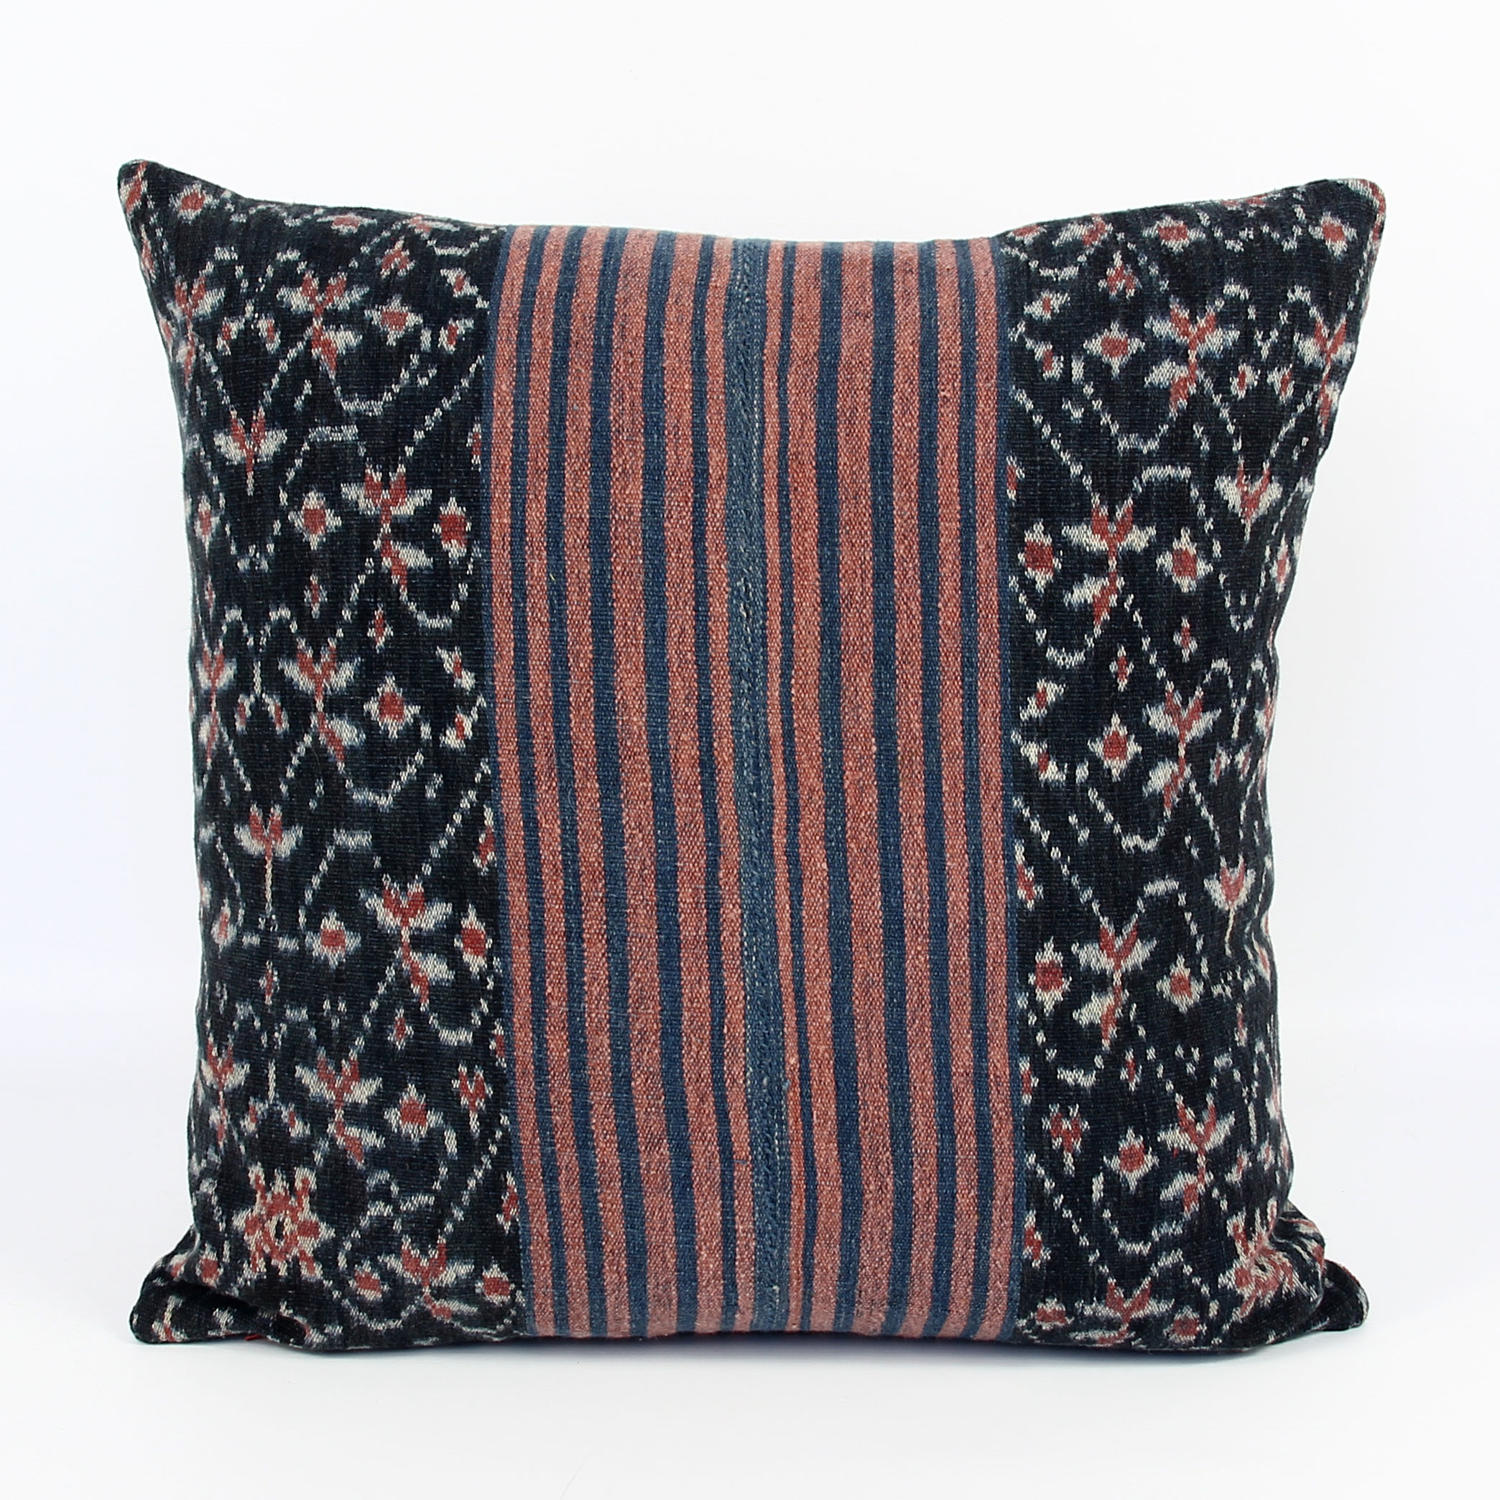 Vintage Savu Ikat Cushion